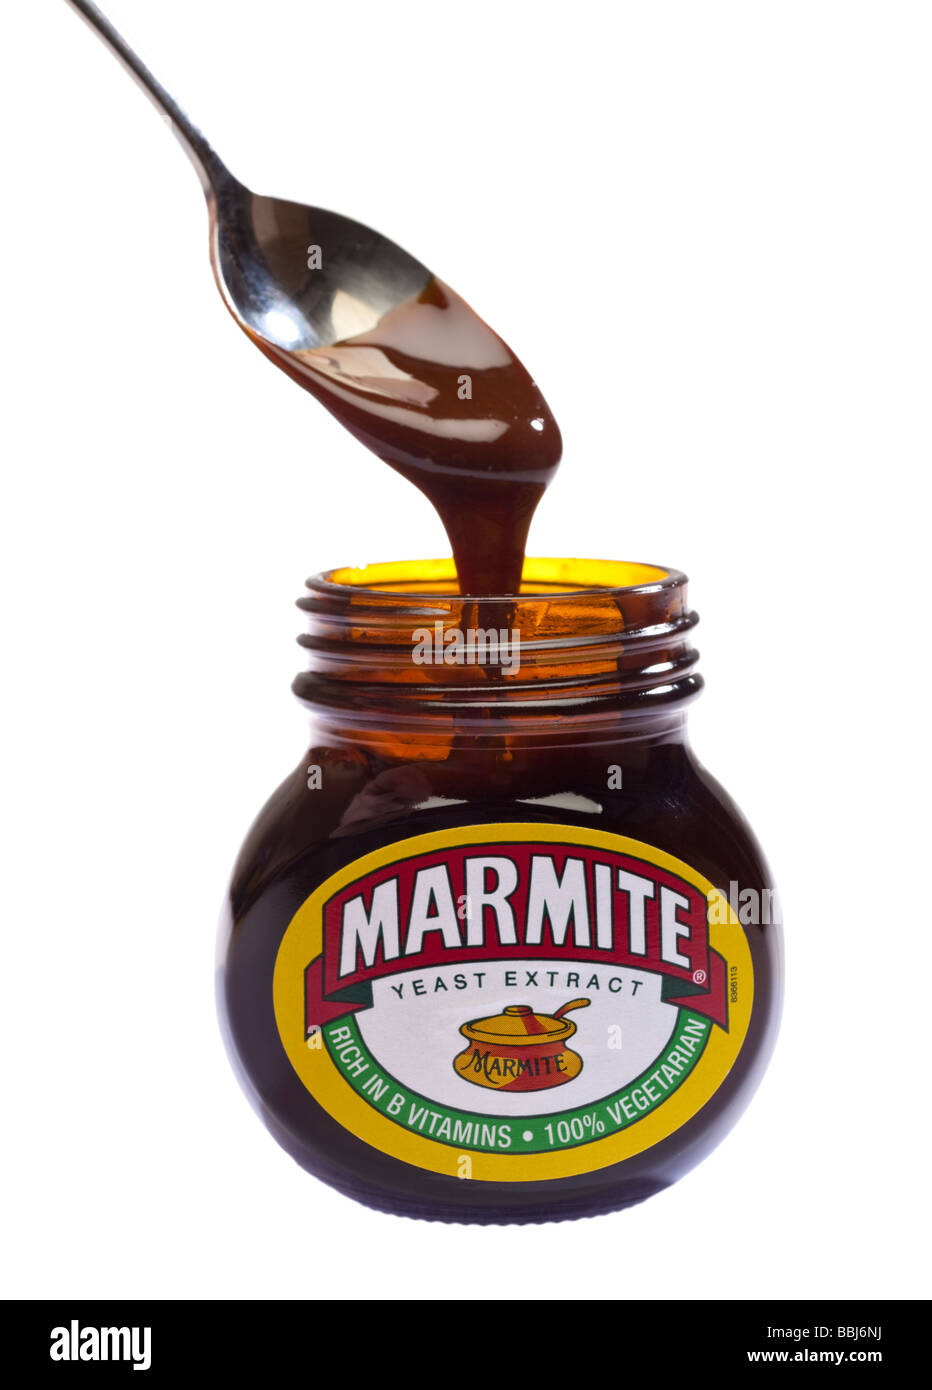 Marmite jar with spoon - Stock Image